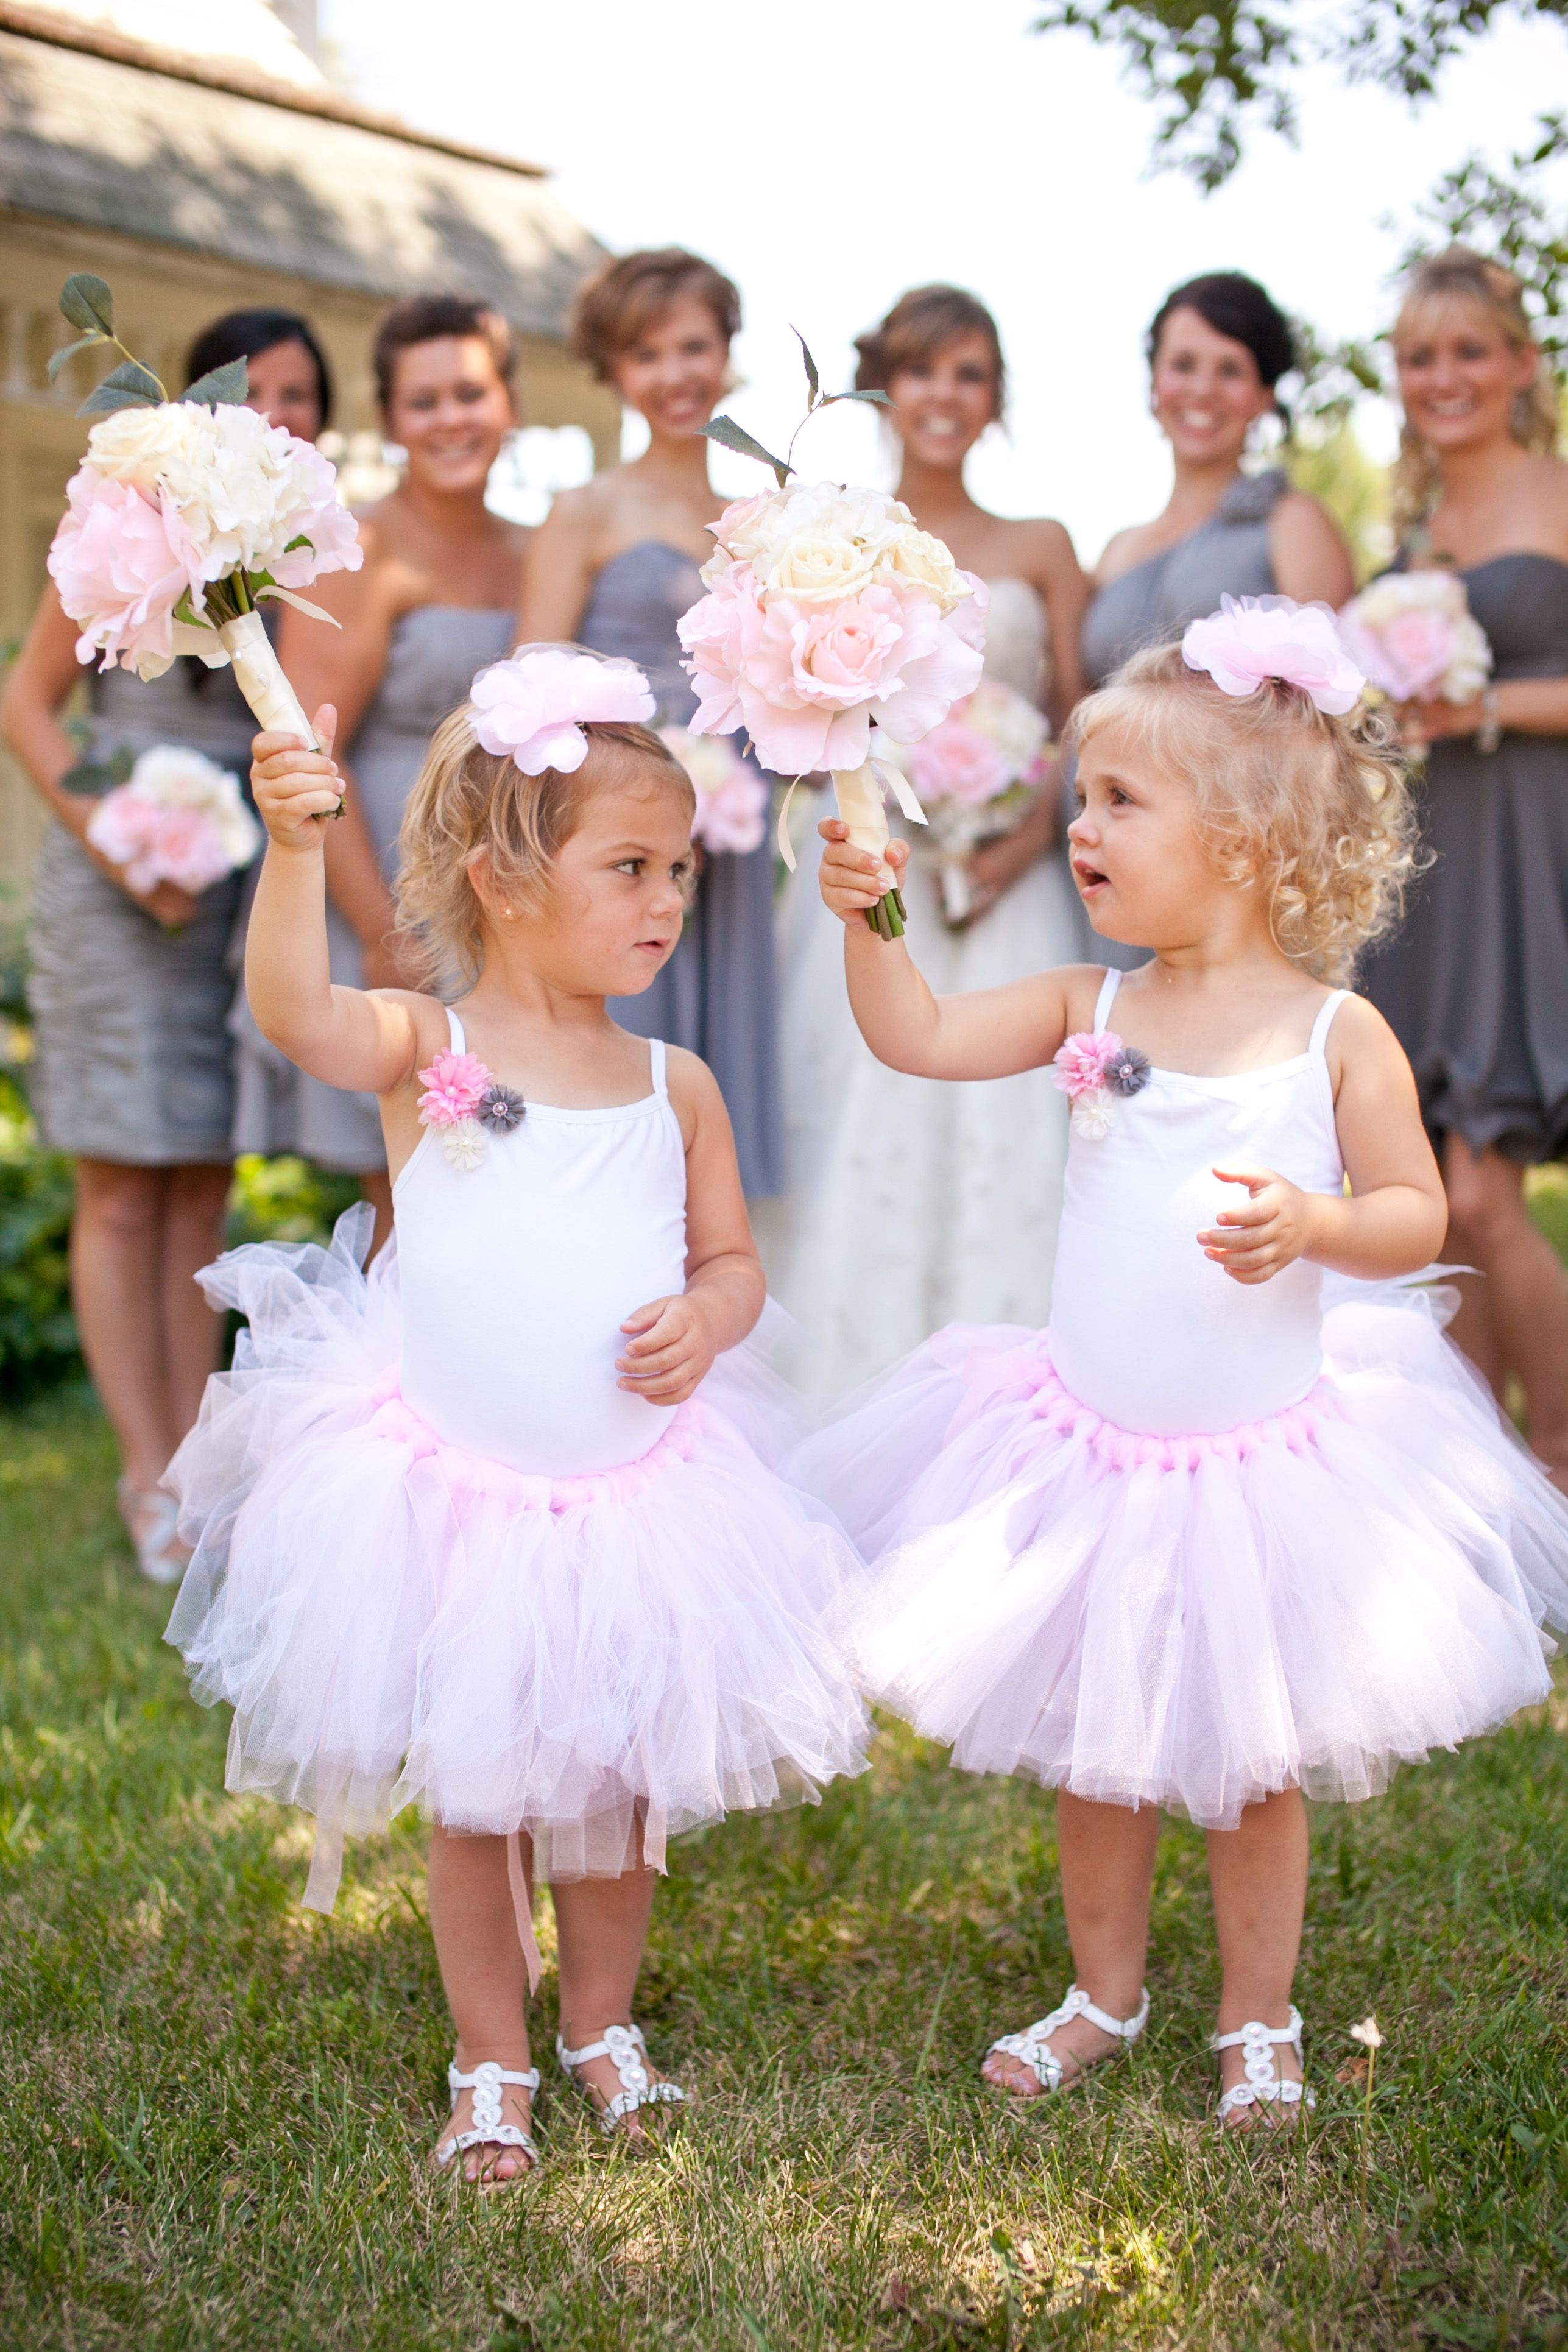 Twin Flower Girl Dresses